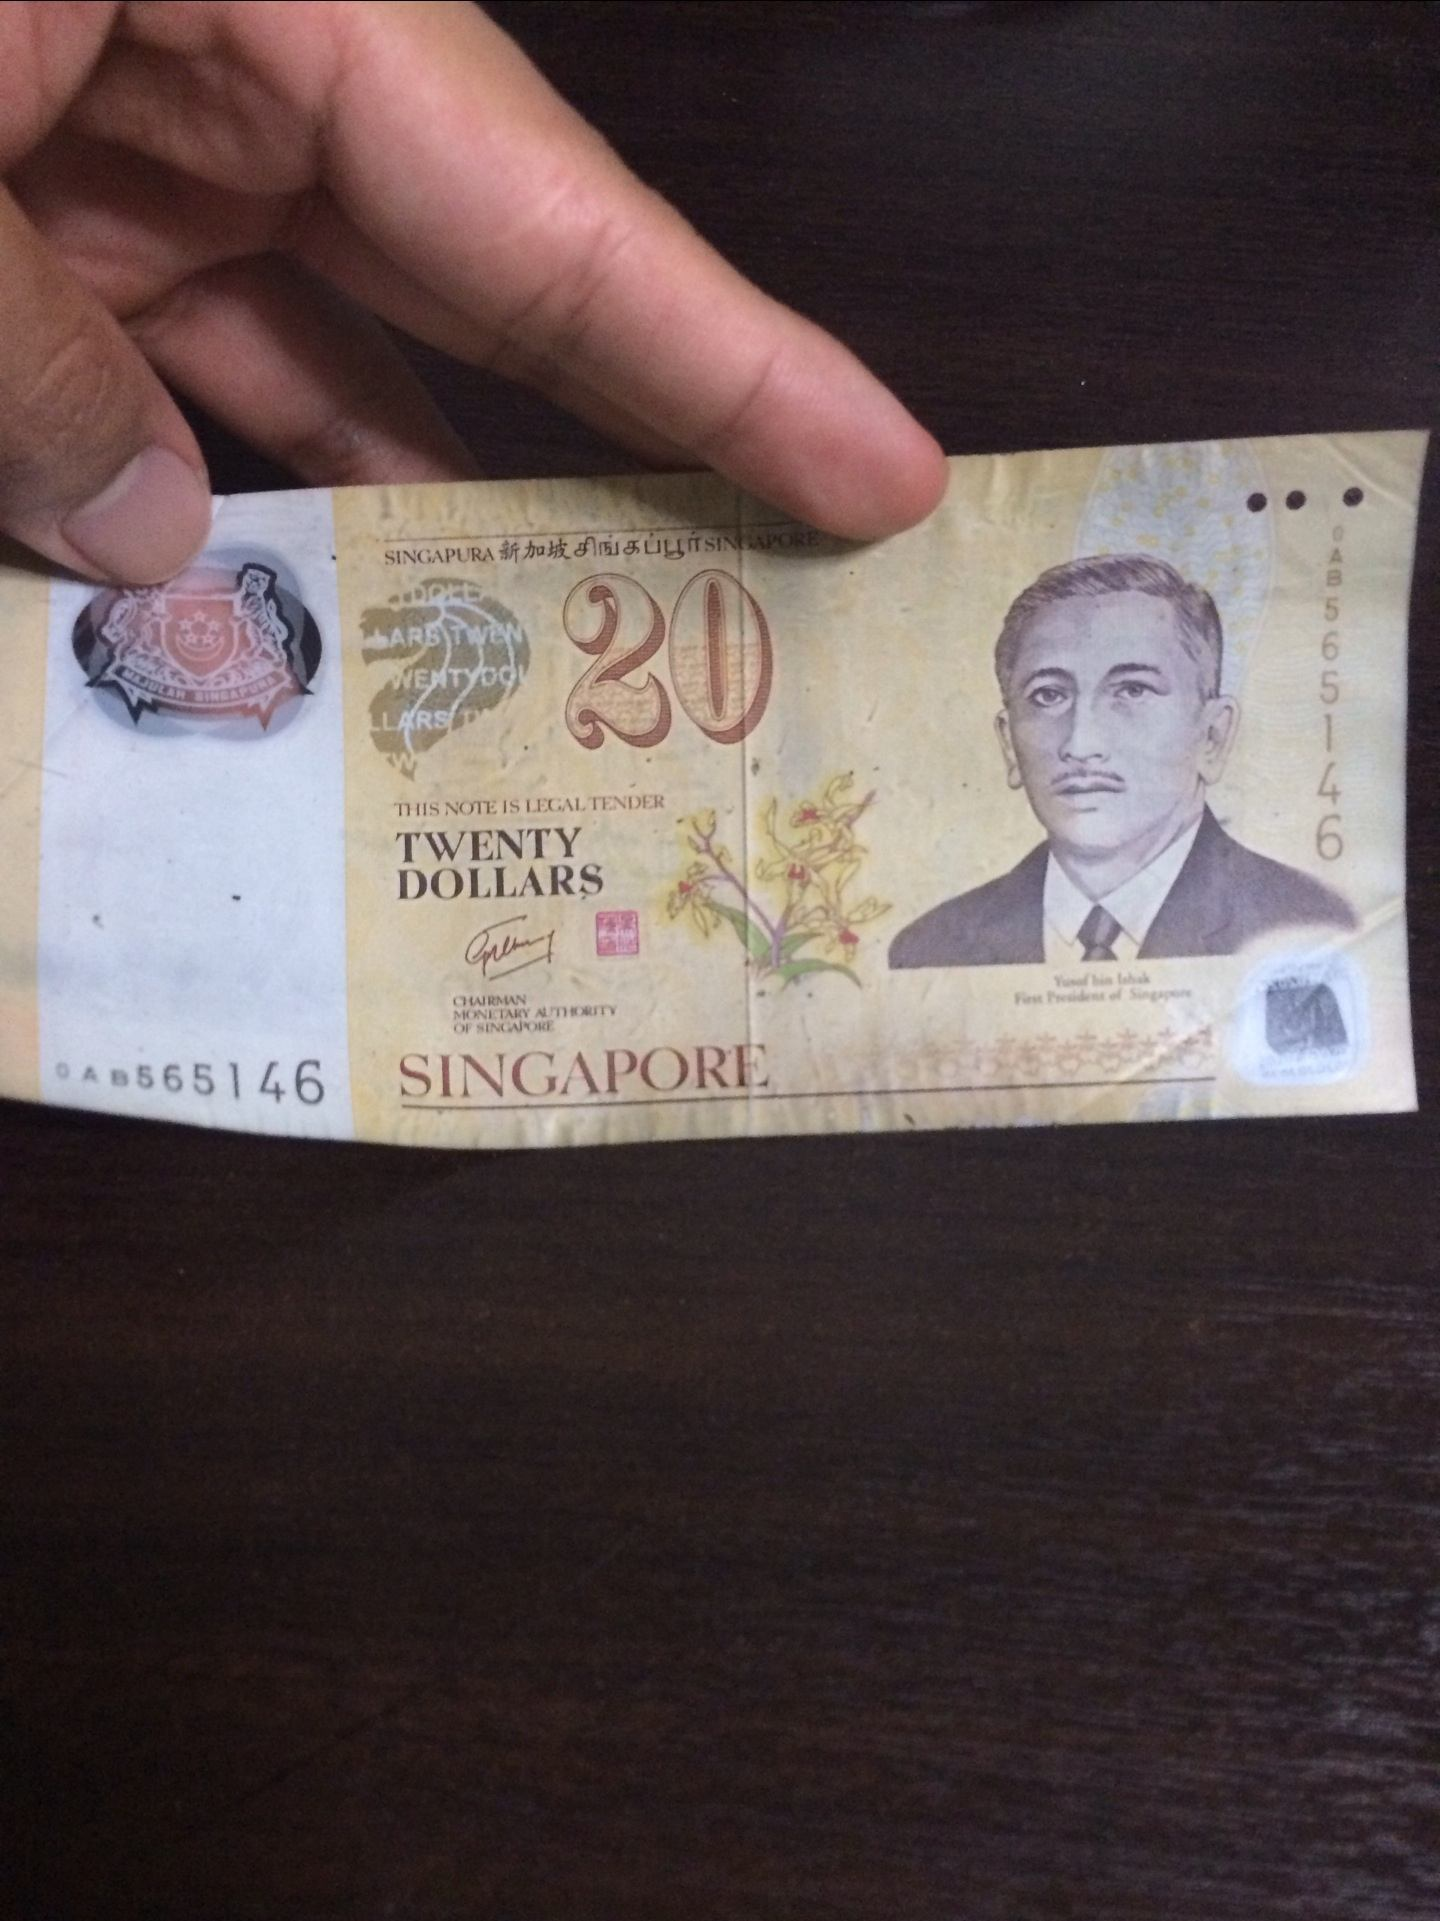 Why is there no $20 note in Singapore? - Quora